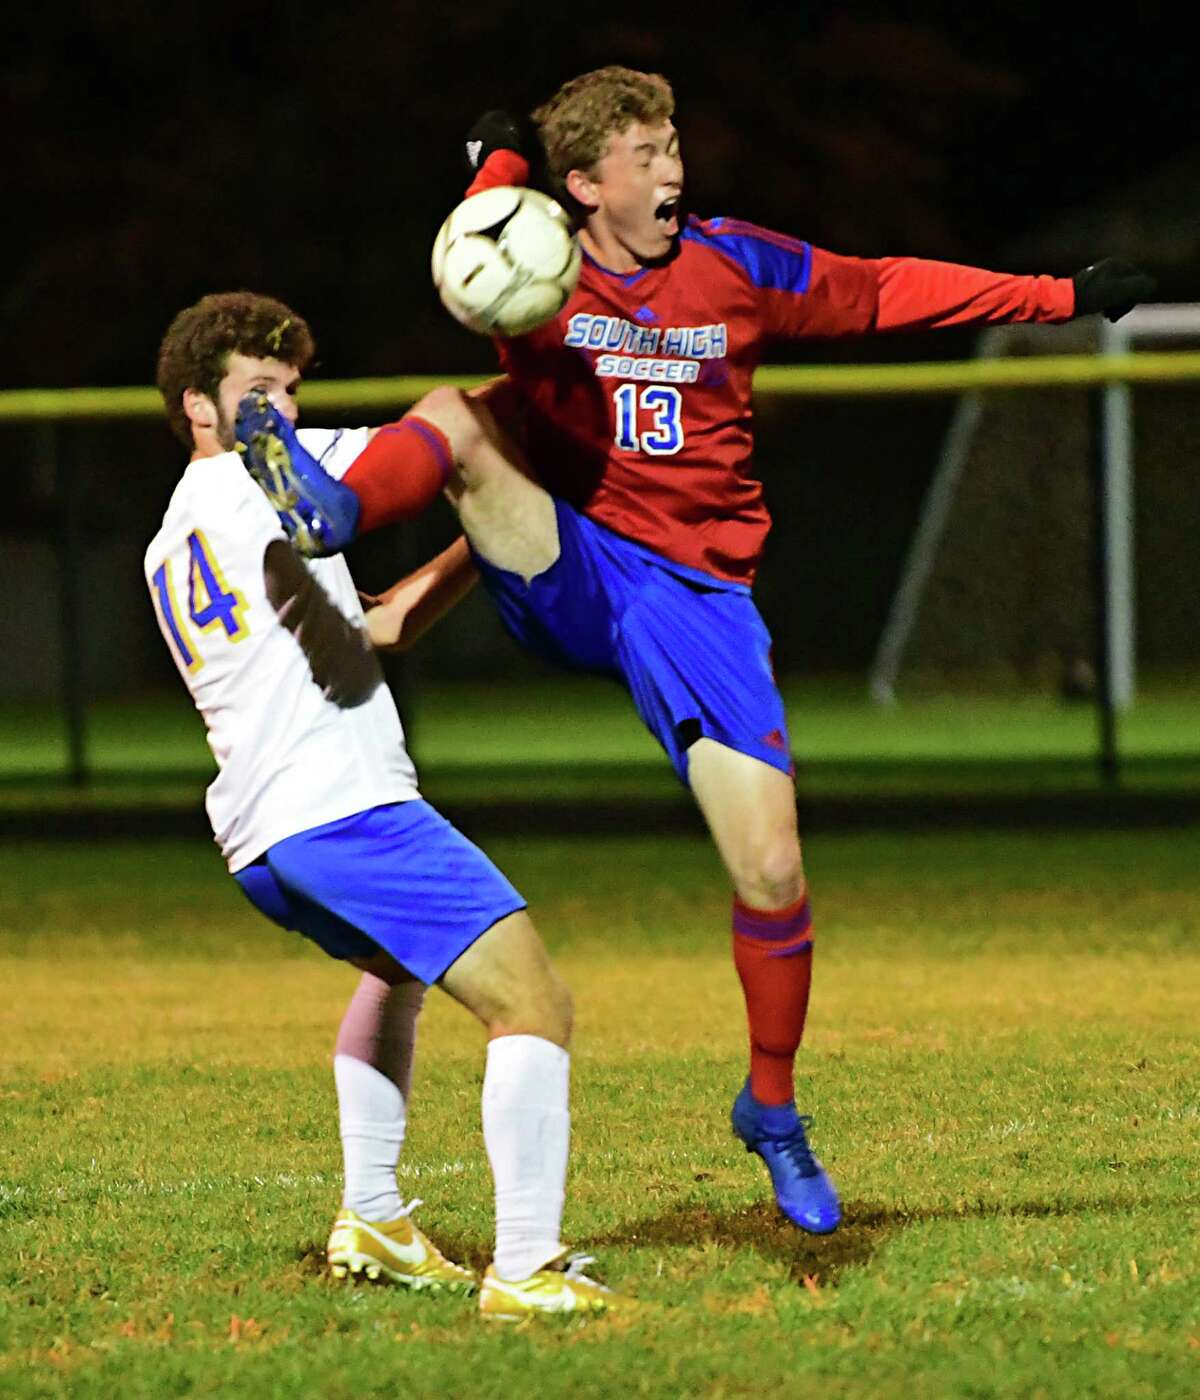 Queensbury's Lucas McCane, left, battles for the ball with South Glens Falls' Andrew King during a soccer game on Wednesday, Oct. 2, 2019. This school year's season has been pushed to spring. (Lori Van Buren/Times Union)